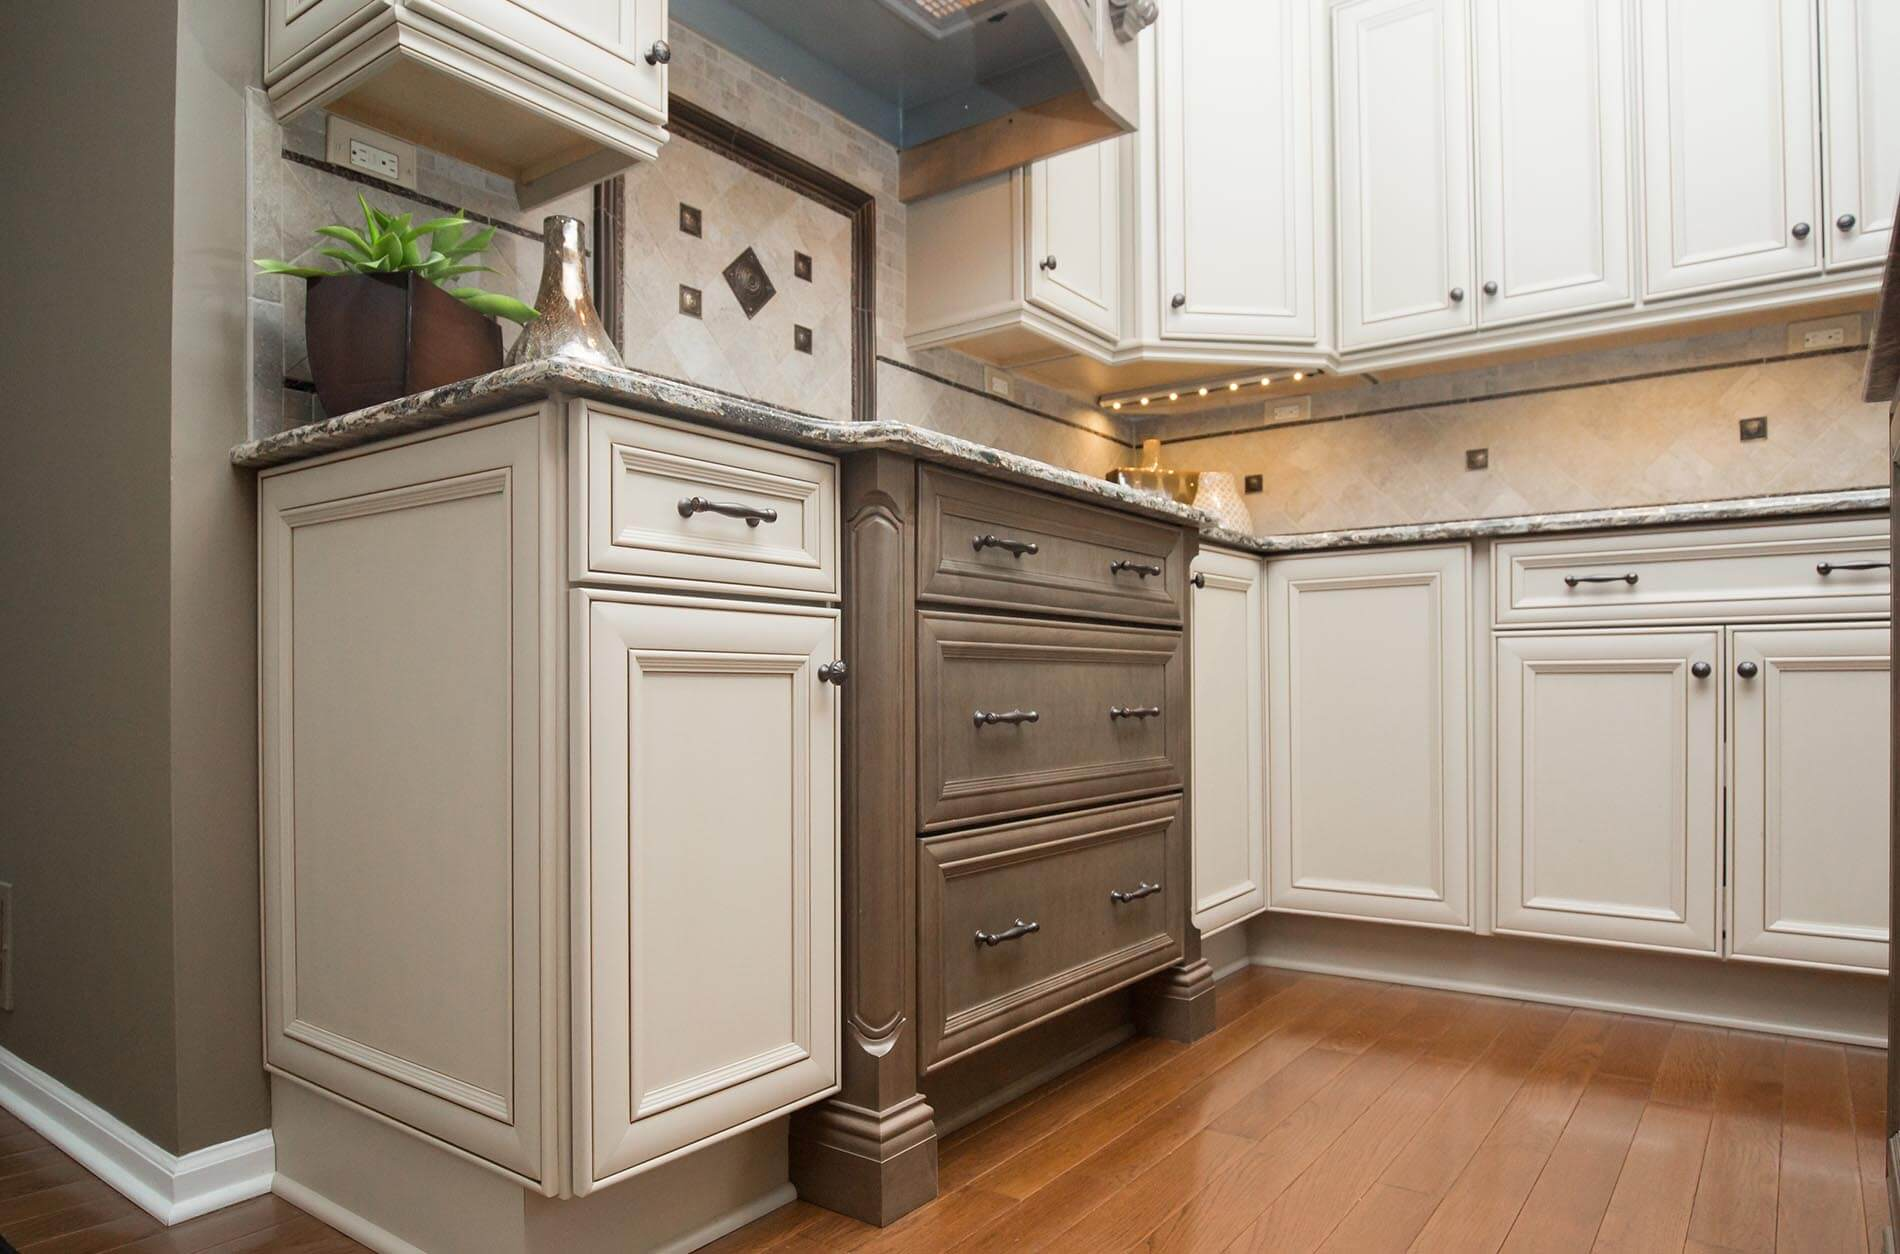 Two-toned kitchen cabinets in off-white and soft gray, including a dresser-style cabinet below the drop-in cooktop.